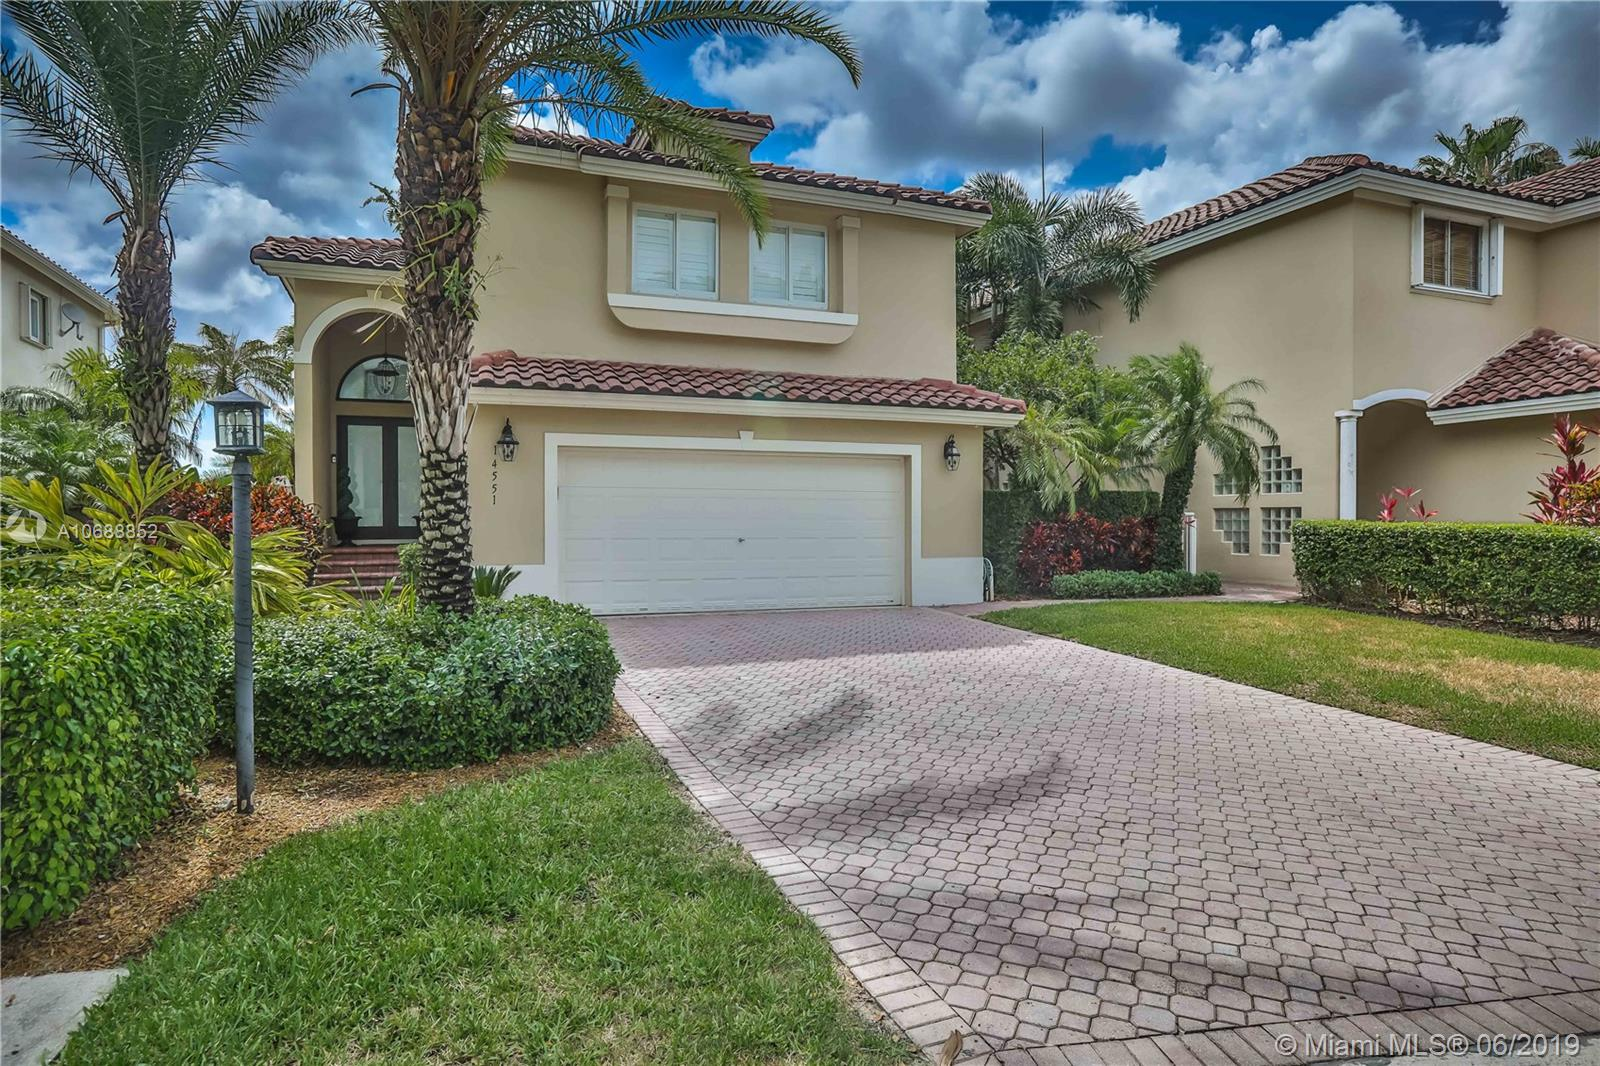 14551 SW 136th Pl, Kendall, Florida